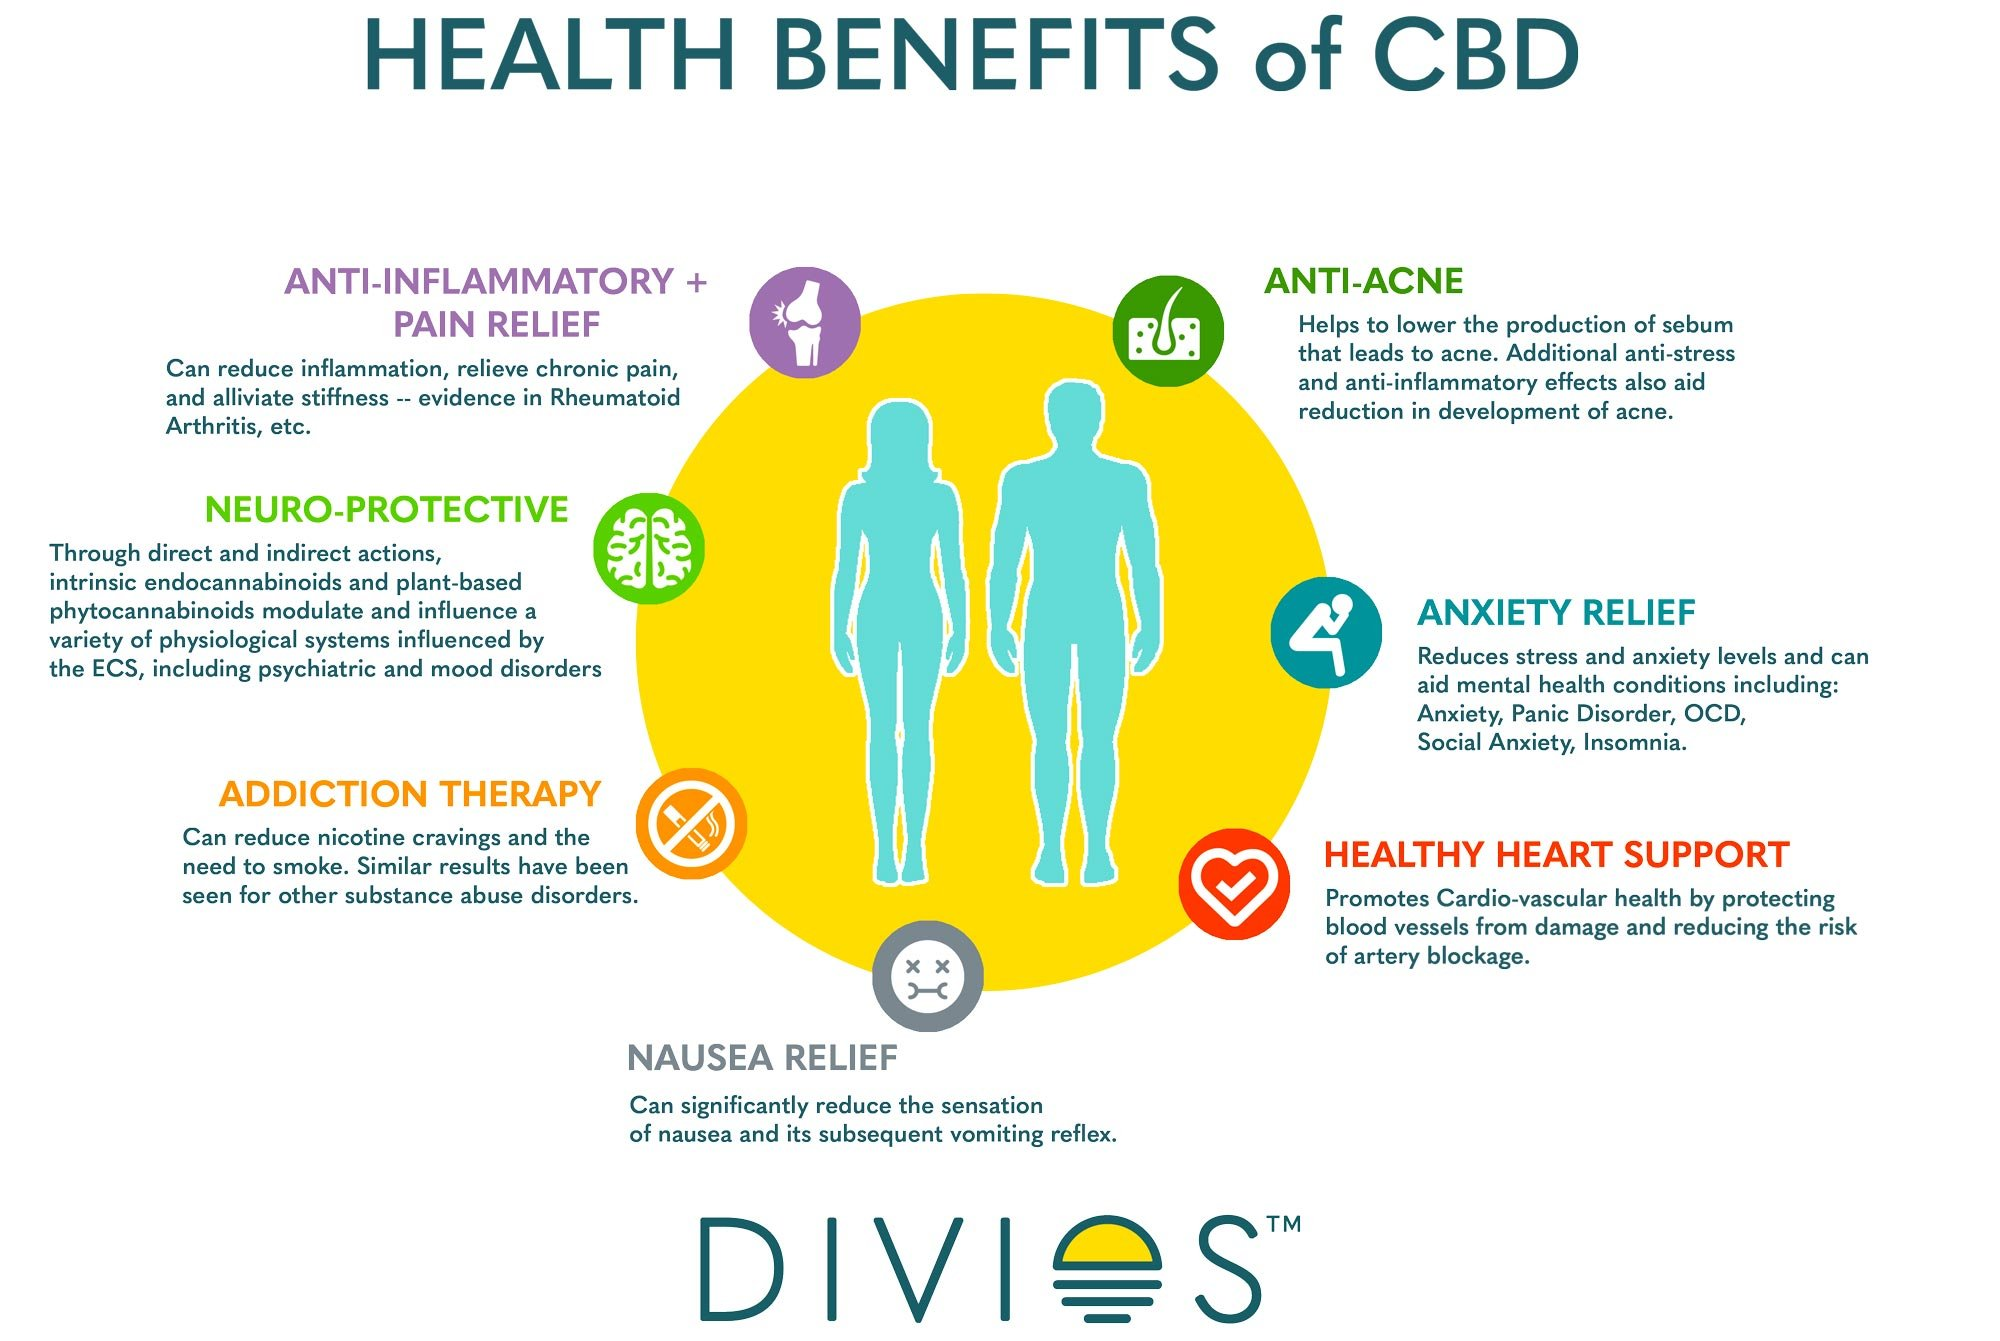 CBD Guide – Divios - Multifunctional Natural Skincare